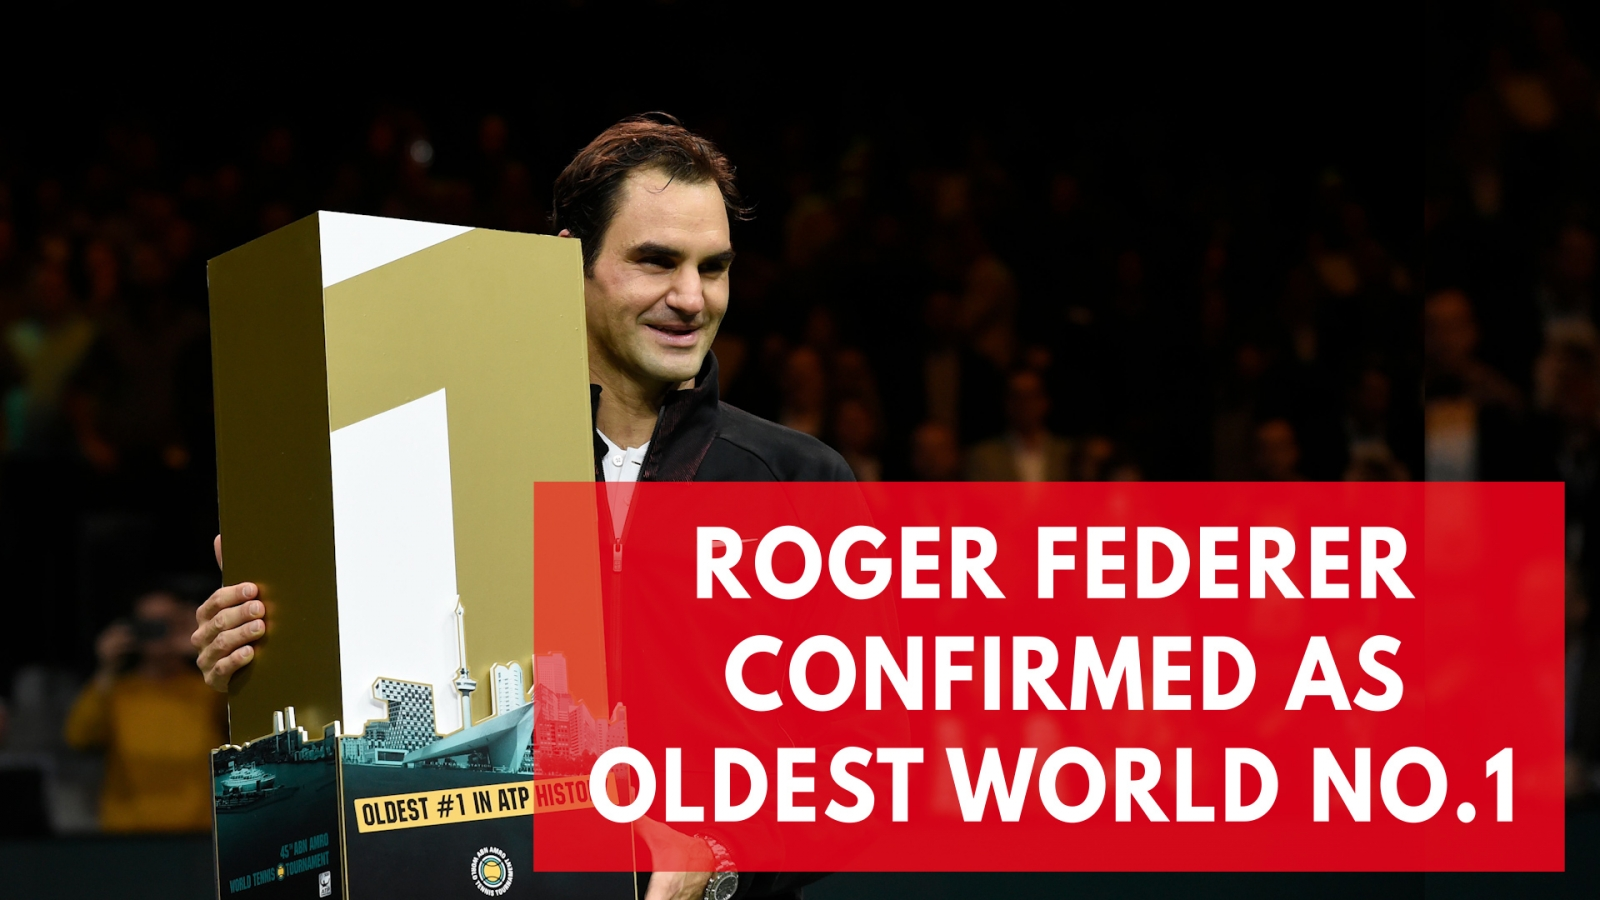 roger-federer-becomes-oldest-world-no-1-in-history